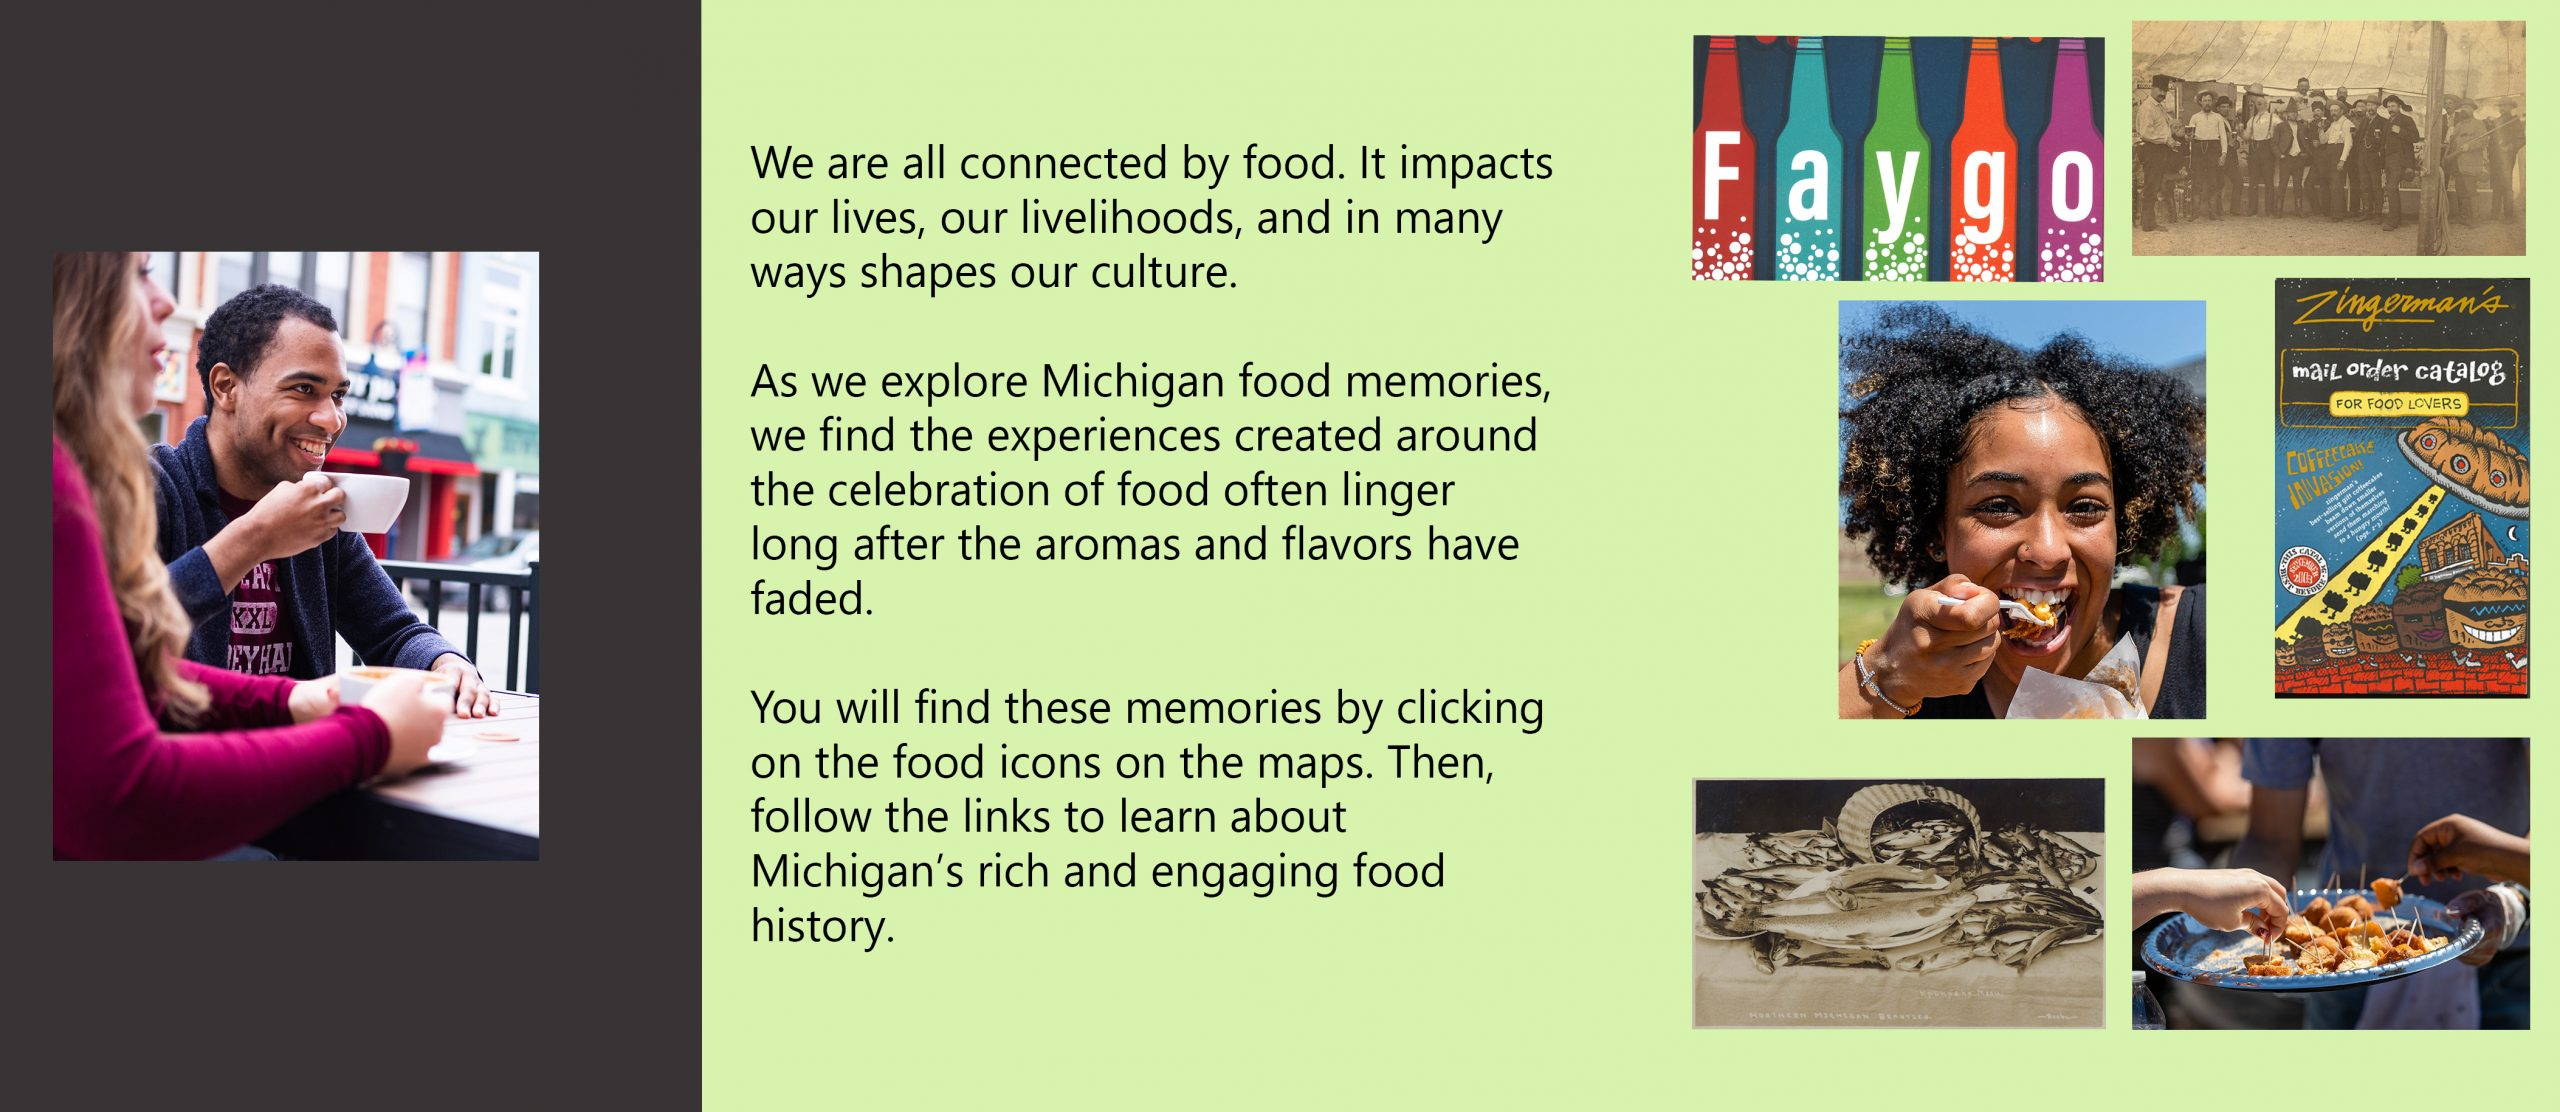 We are all connected by food. It impacts our lives, our livelihoods, and in many ways shapes our culture. as we explore Michigan food memories, we find the experiences created around the celebration of food often linger long after the aromas and flavors have faded. You will find these memories by clicking on the food icons on the maps. Then, follow the links to learn about Michigan rich and engaging food history.